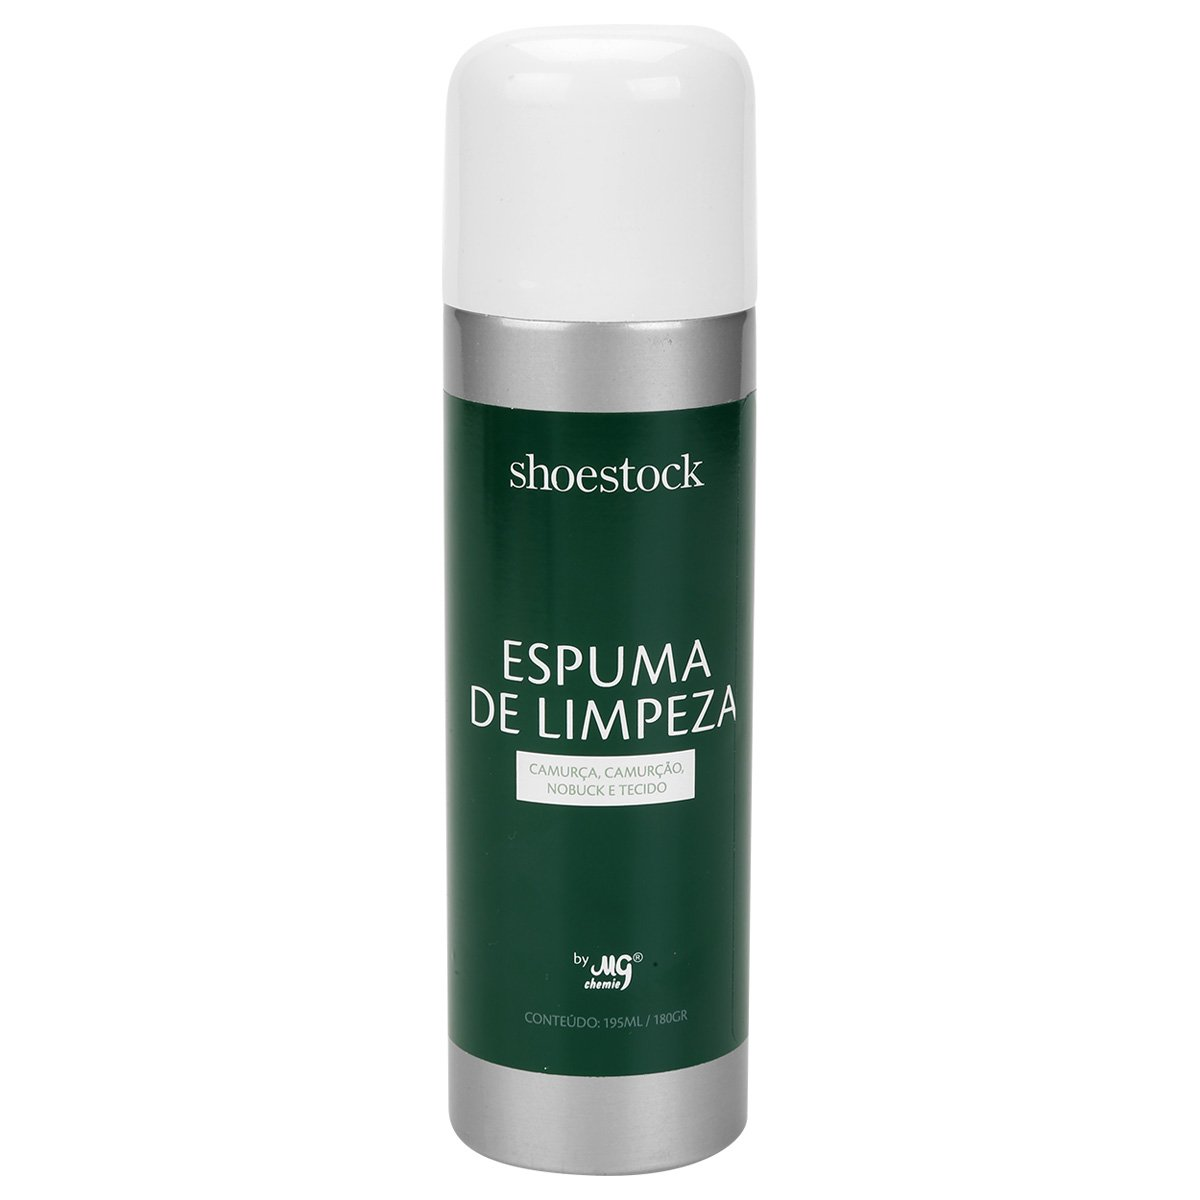 Espuma de Limpeza Shoestock 195ml